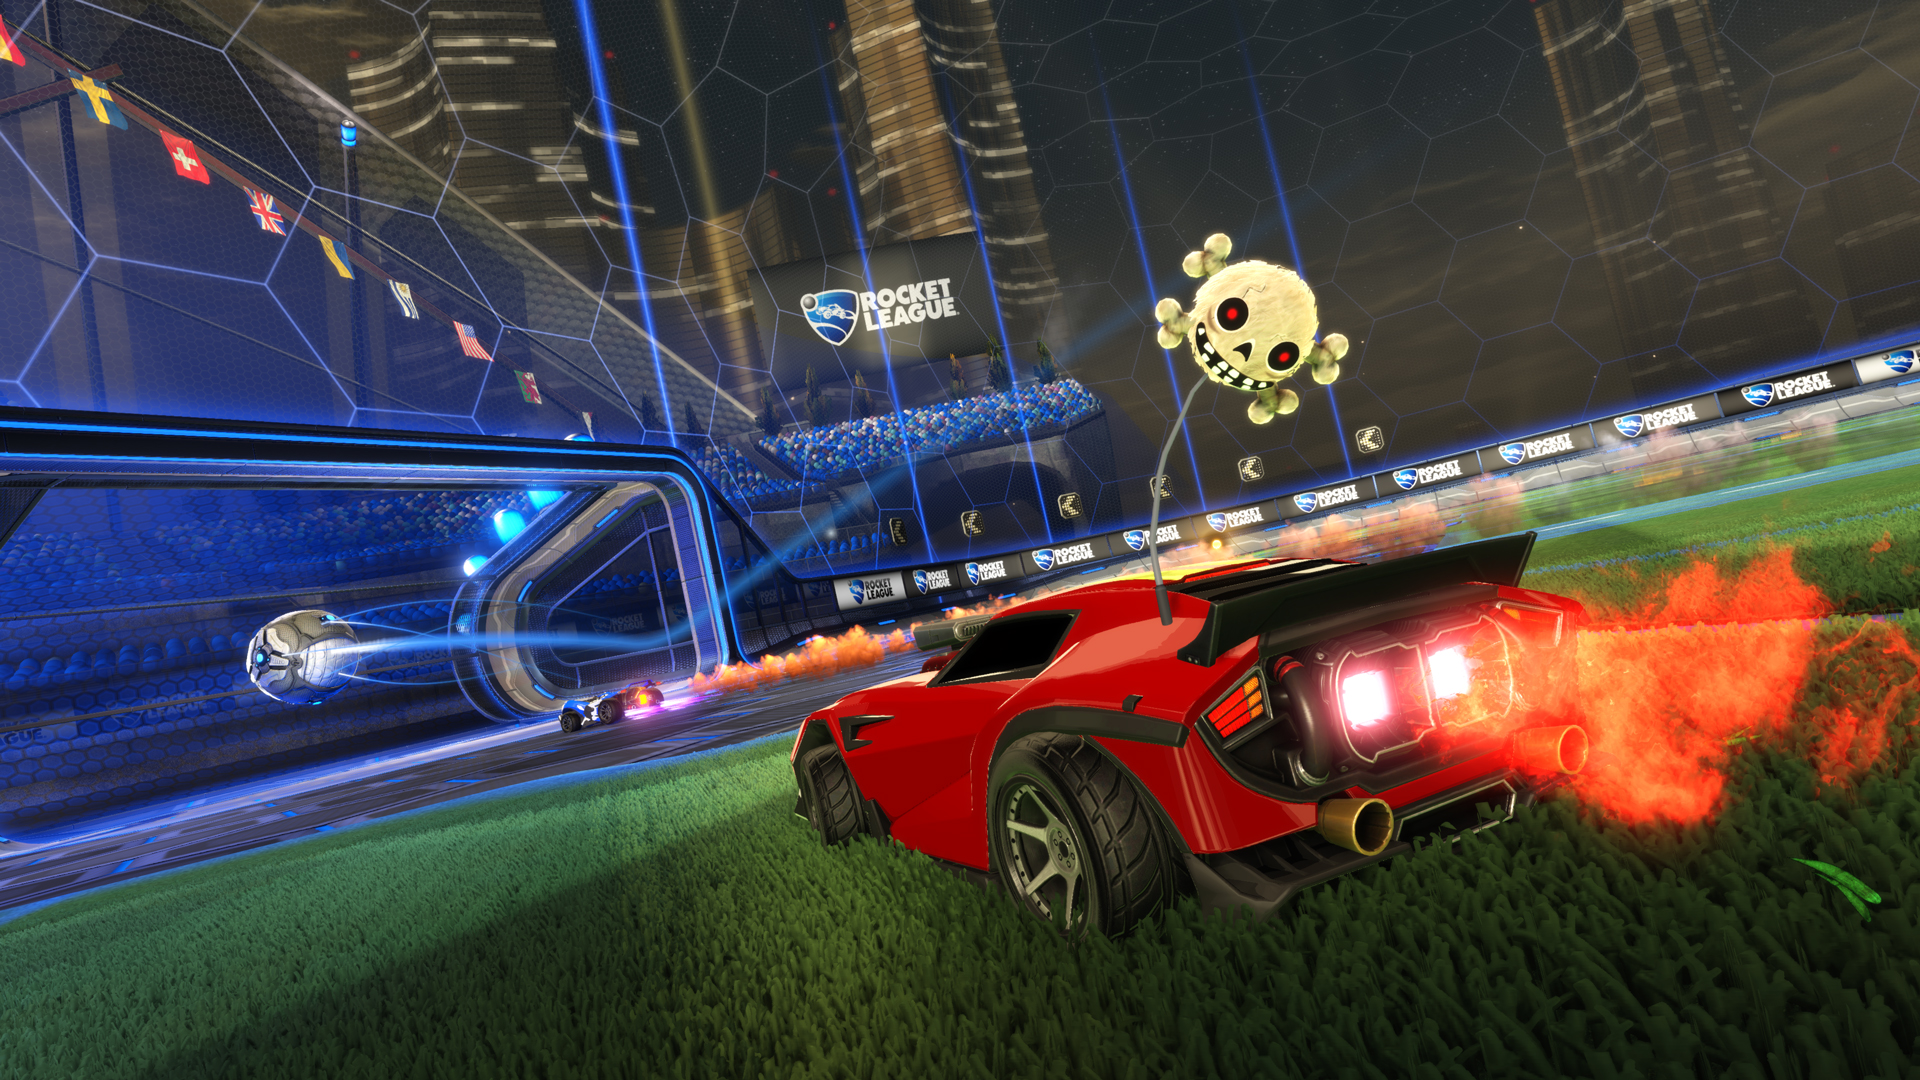 rocket-league-14-10-2016-image-3